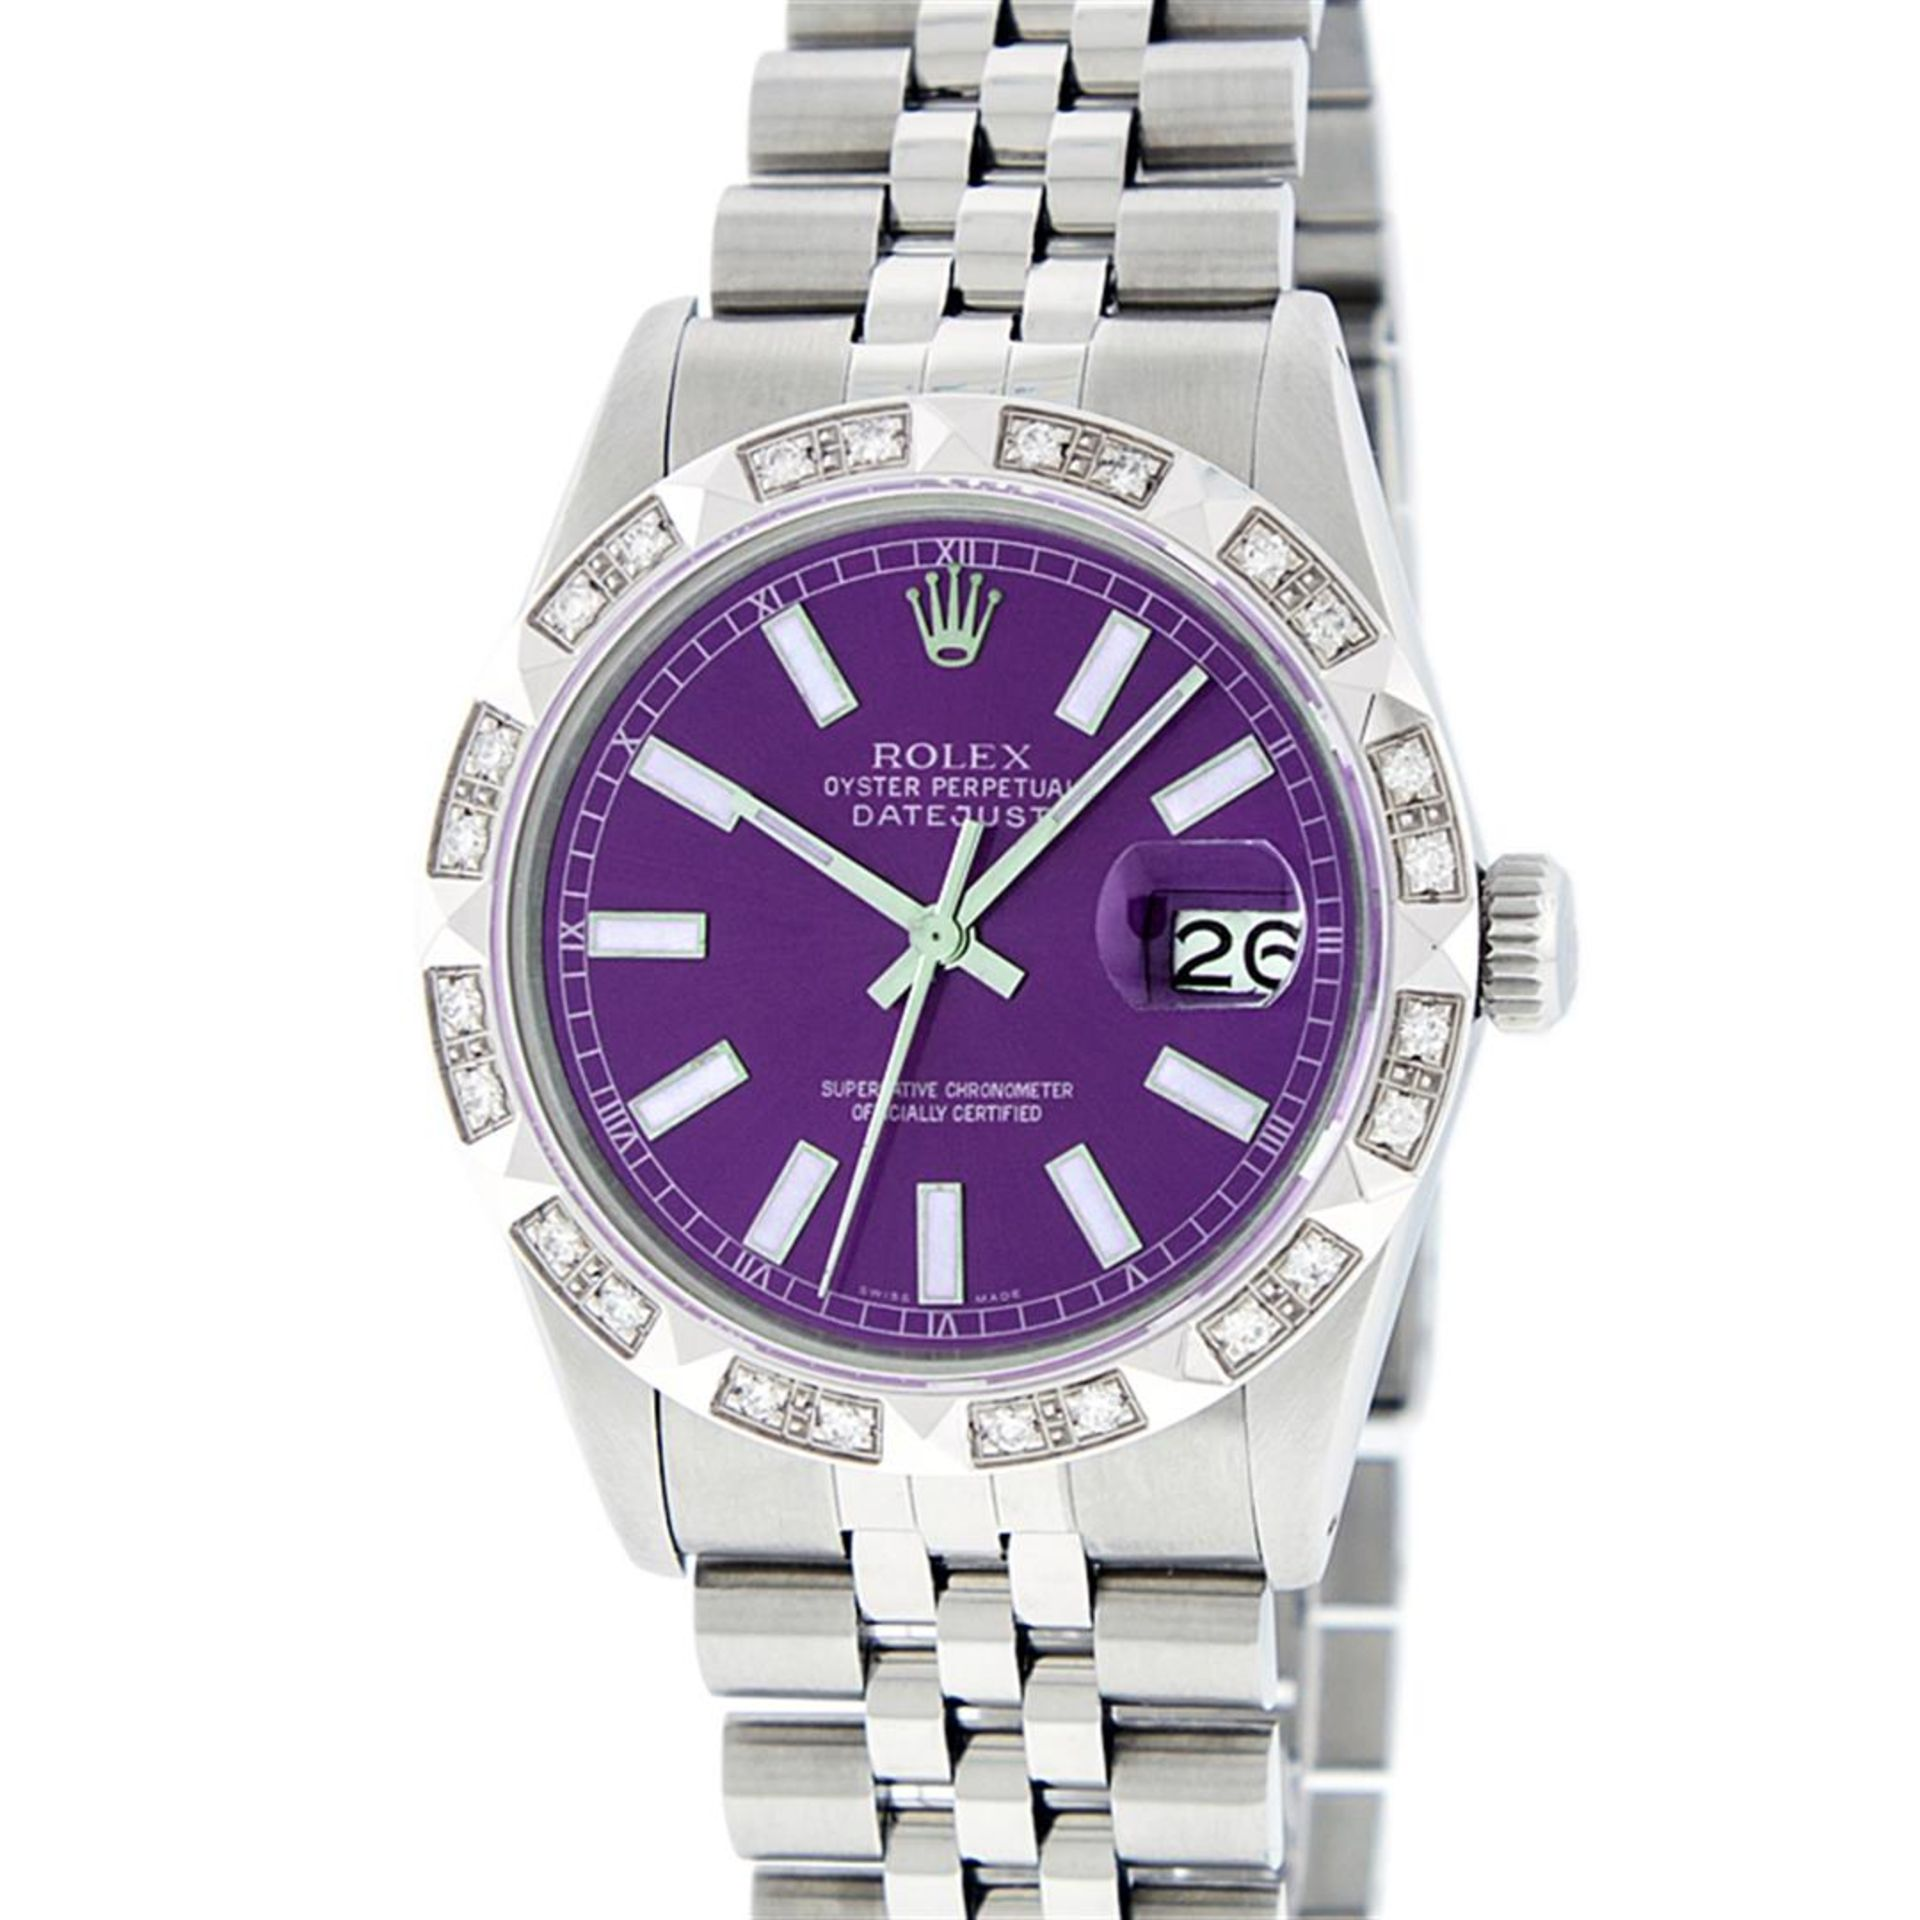 Rolex Mens Stainless Steel 36MM Purple Index Pyramid Diamond Datejust Wristwatch - Image 2 of 9